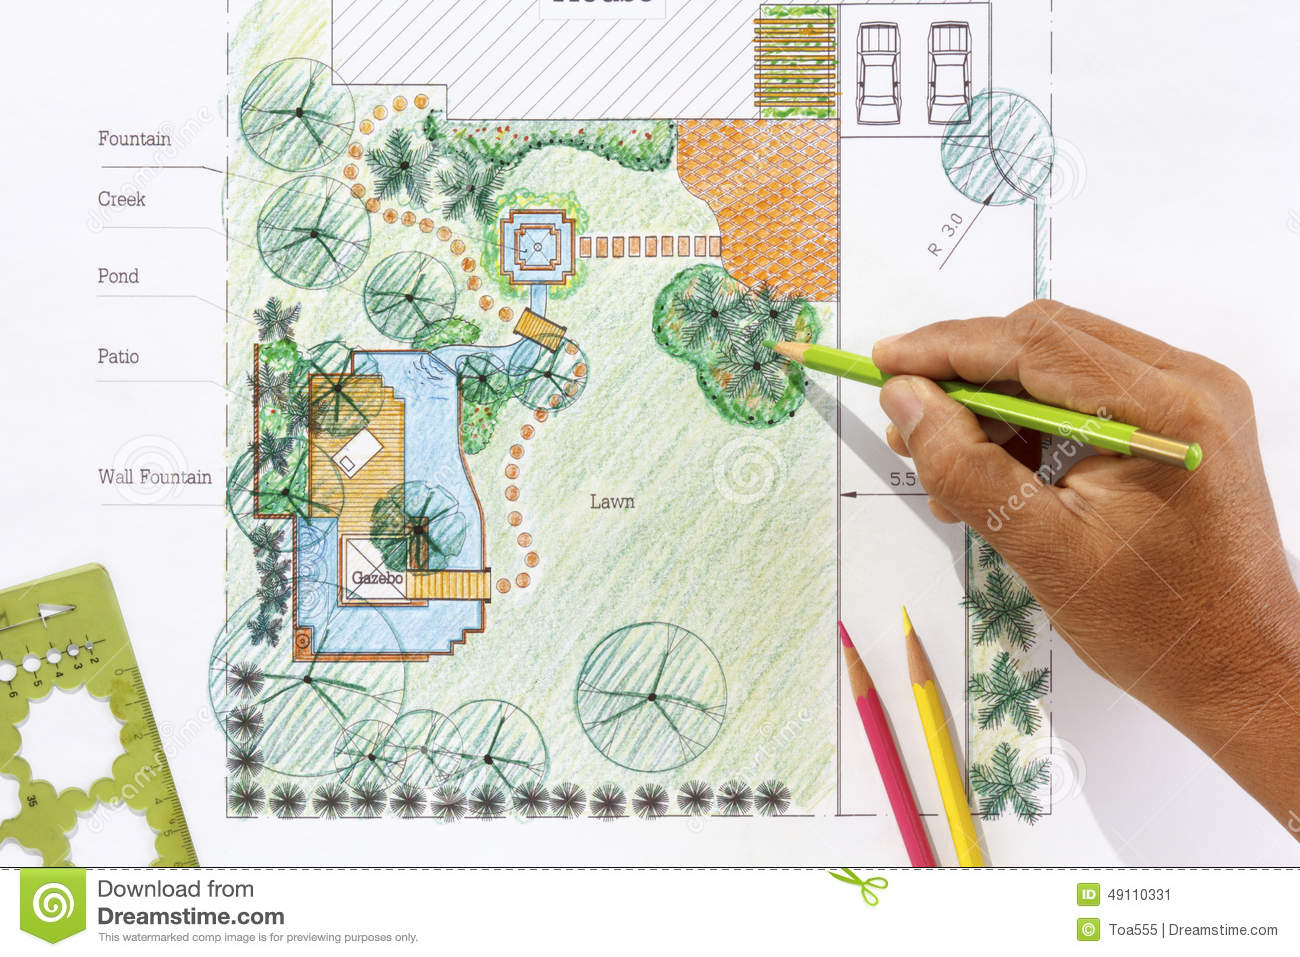 Landscape architect design water garden plans stock photo for Garden design plans